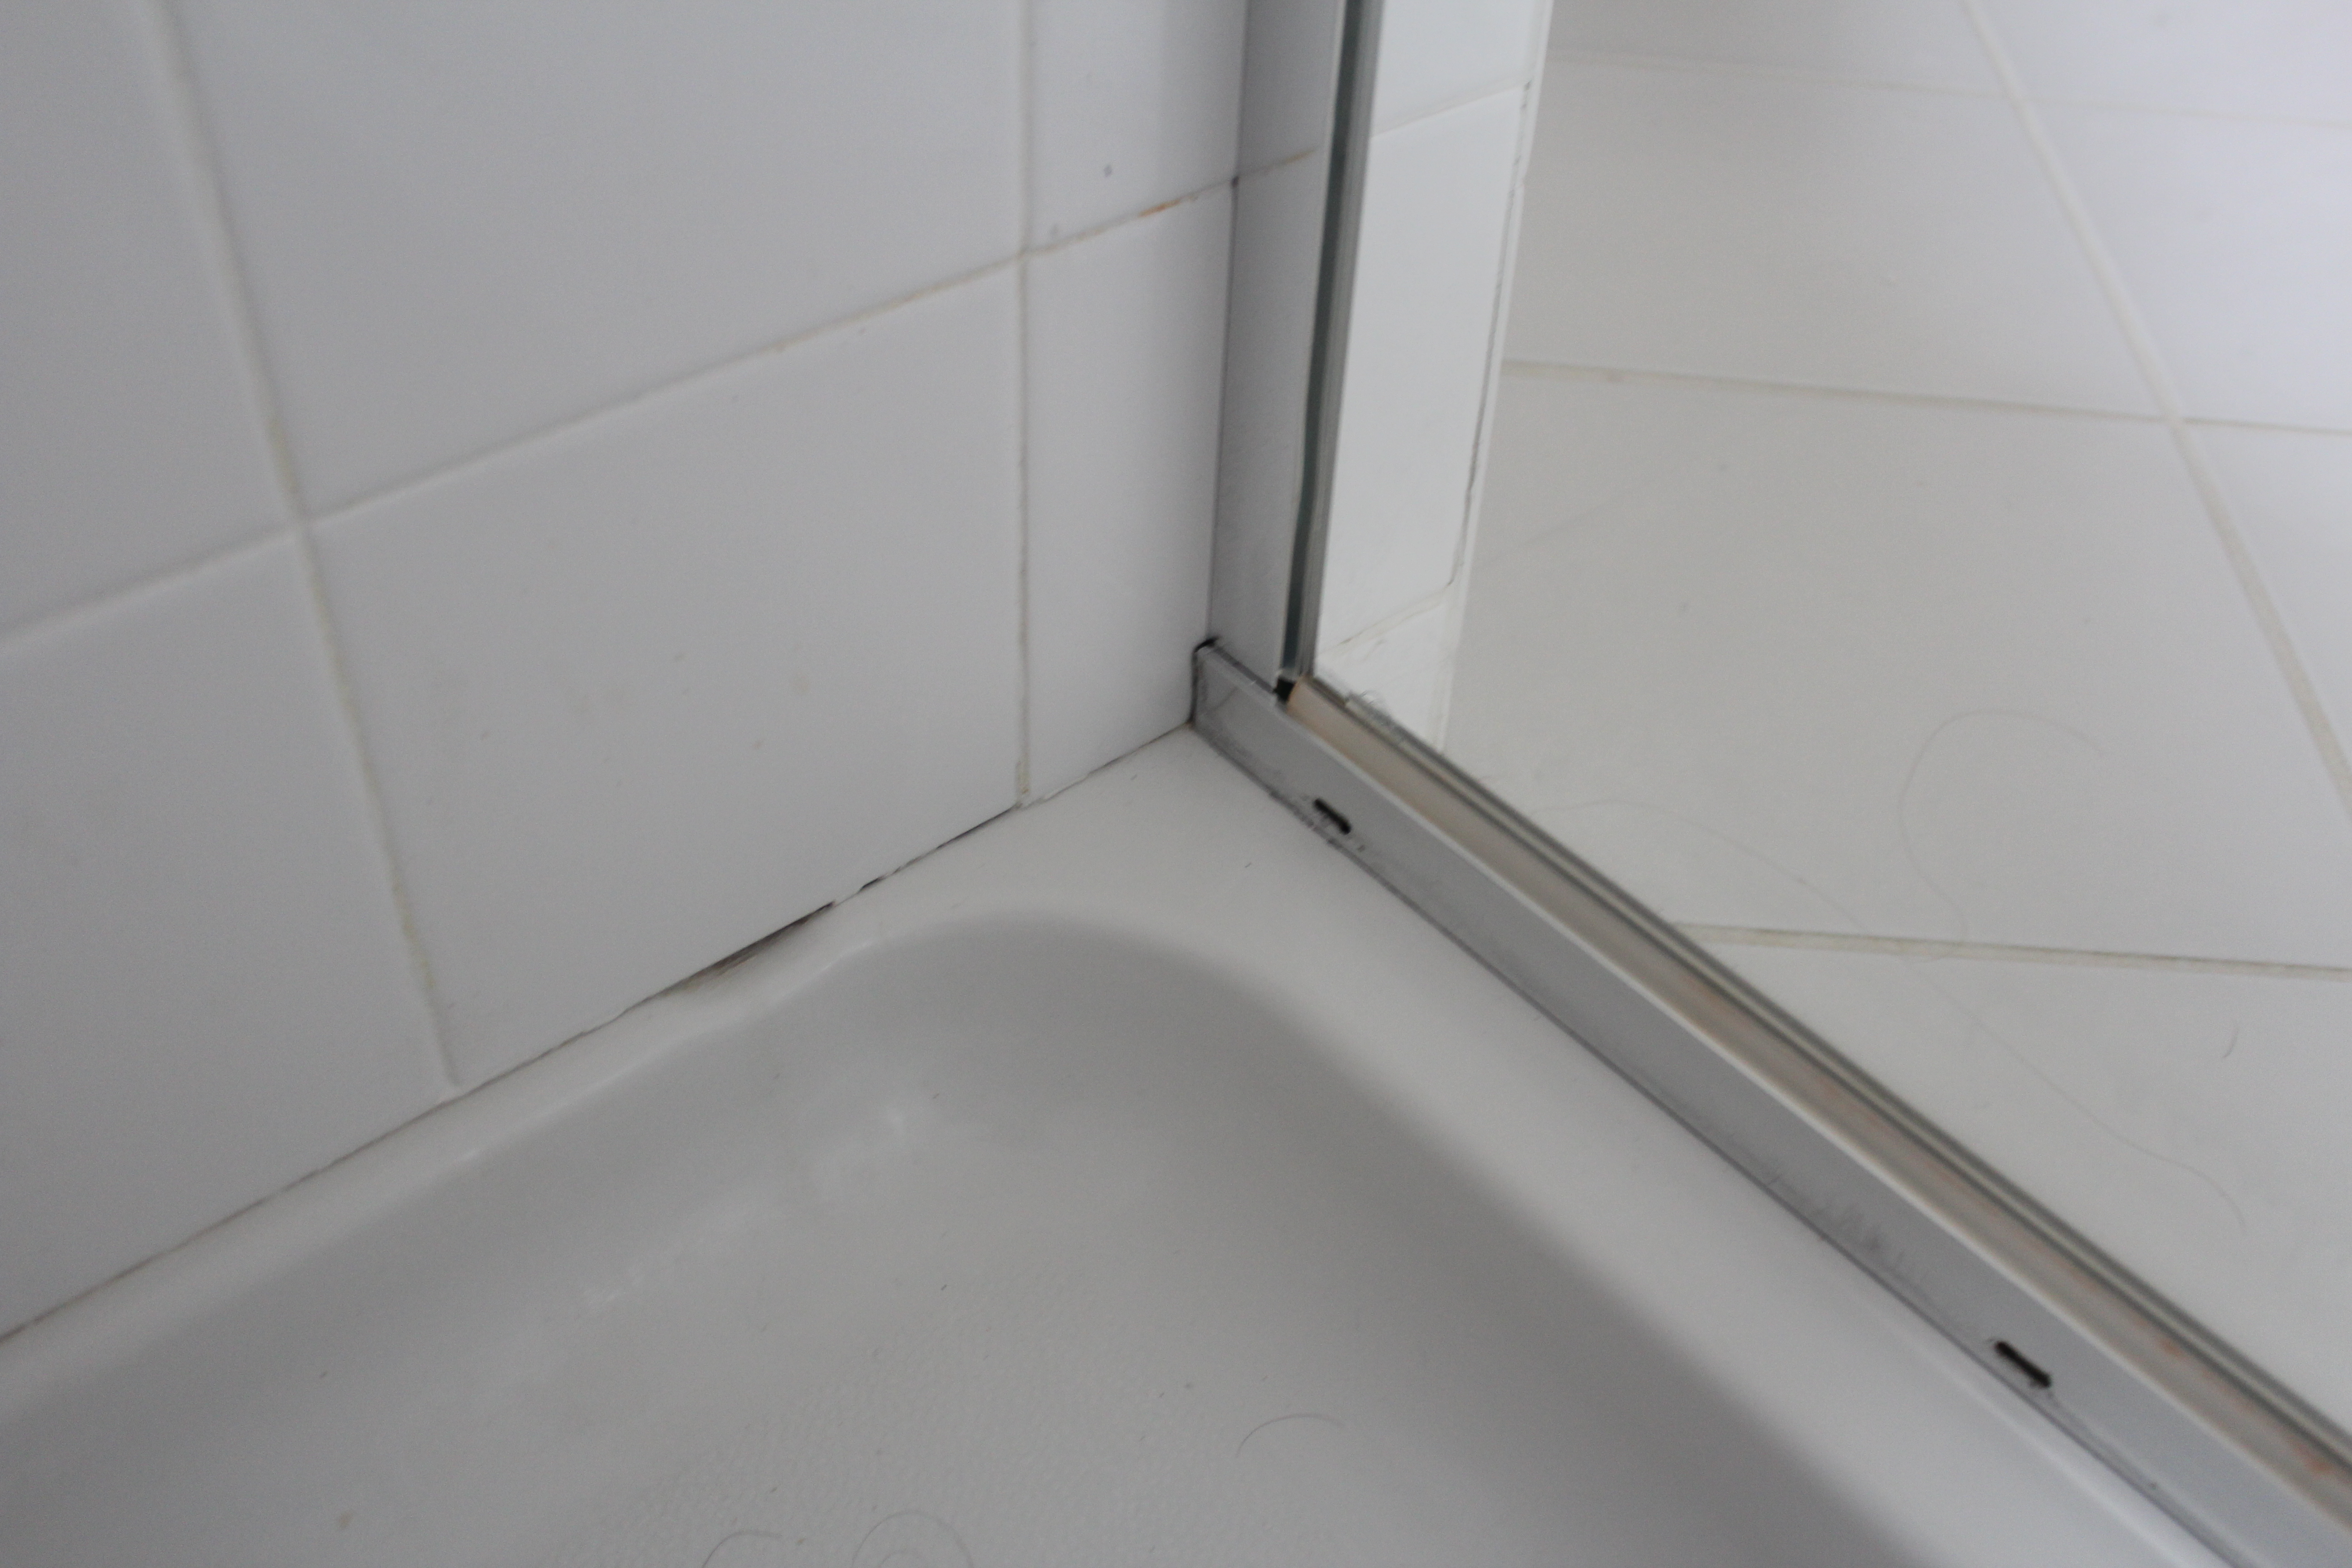 Bathroom Caulking Our Home From Scratch